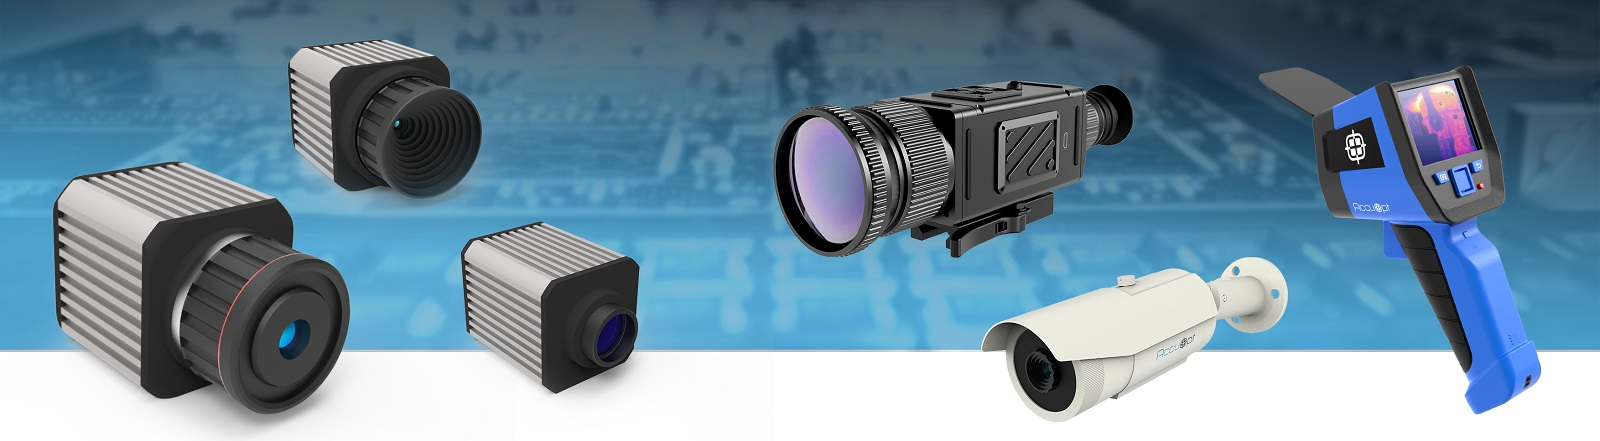 Security Camera Products